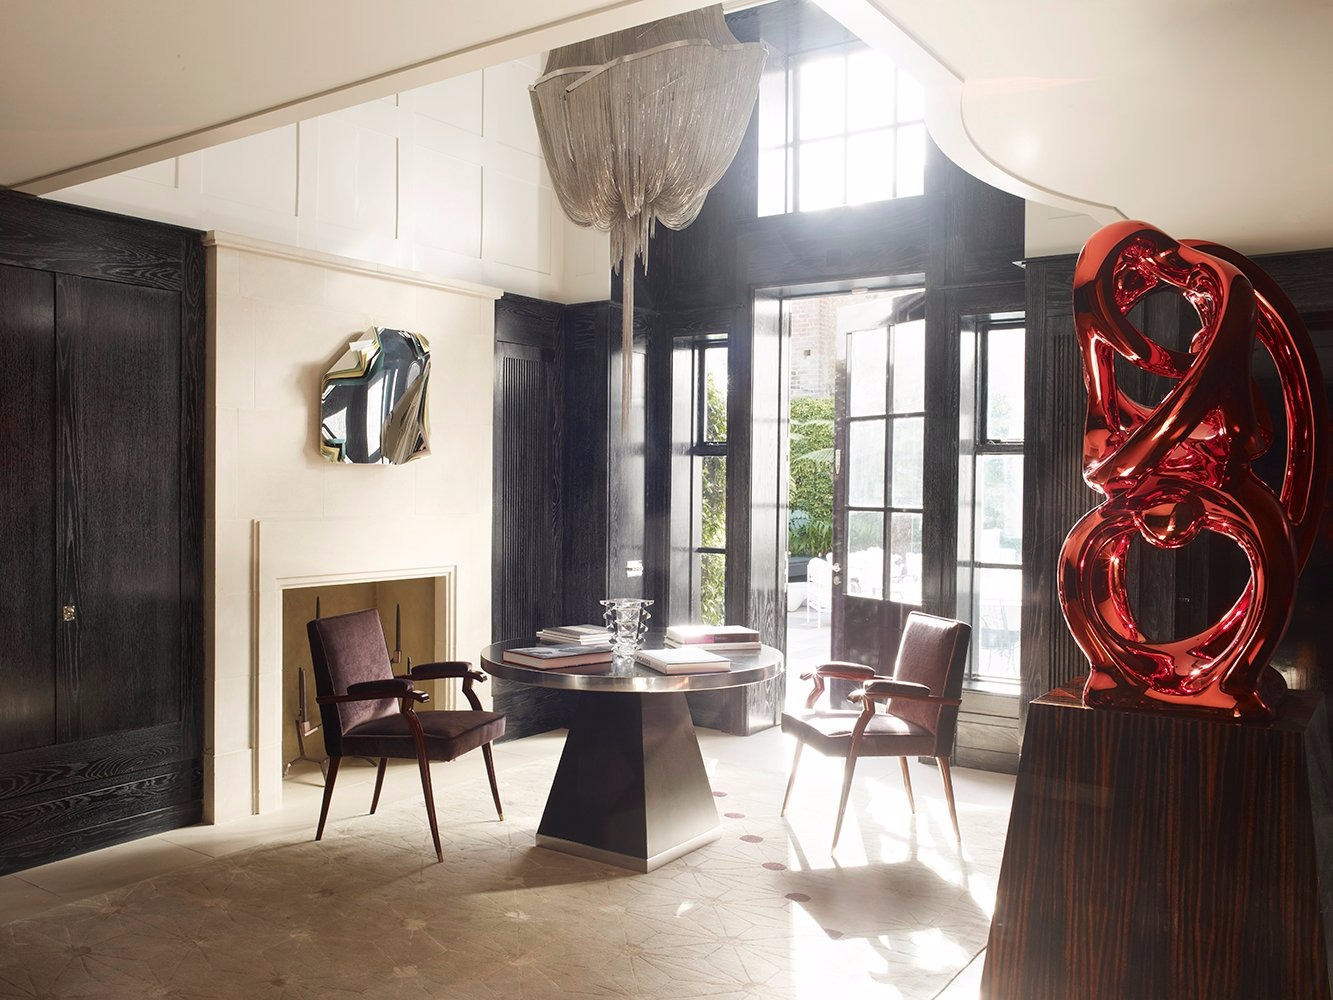 design project, Residence, modern design, Manueline, architectural ornamentation, contemporary design, copper leaf, wallpaper, Rafael De Cárdenas design project Rafael De Cárdenas Remarkable Design Project With Manueline Aesthetic Rafael De C  rdenas Remarkable Design Project With Manueline Aesthetic 7